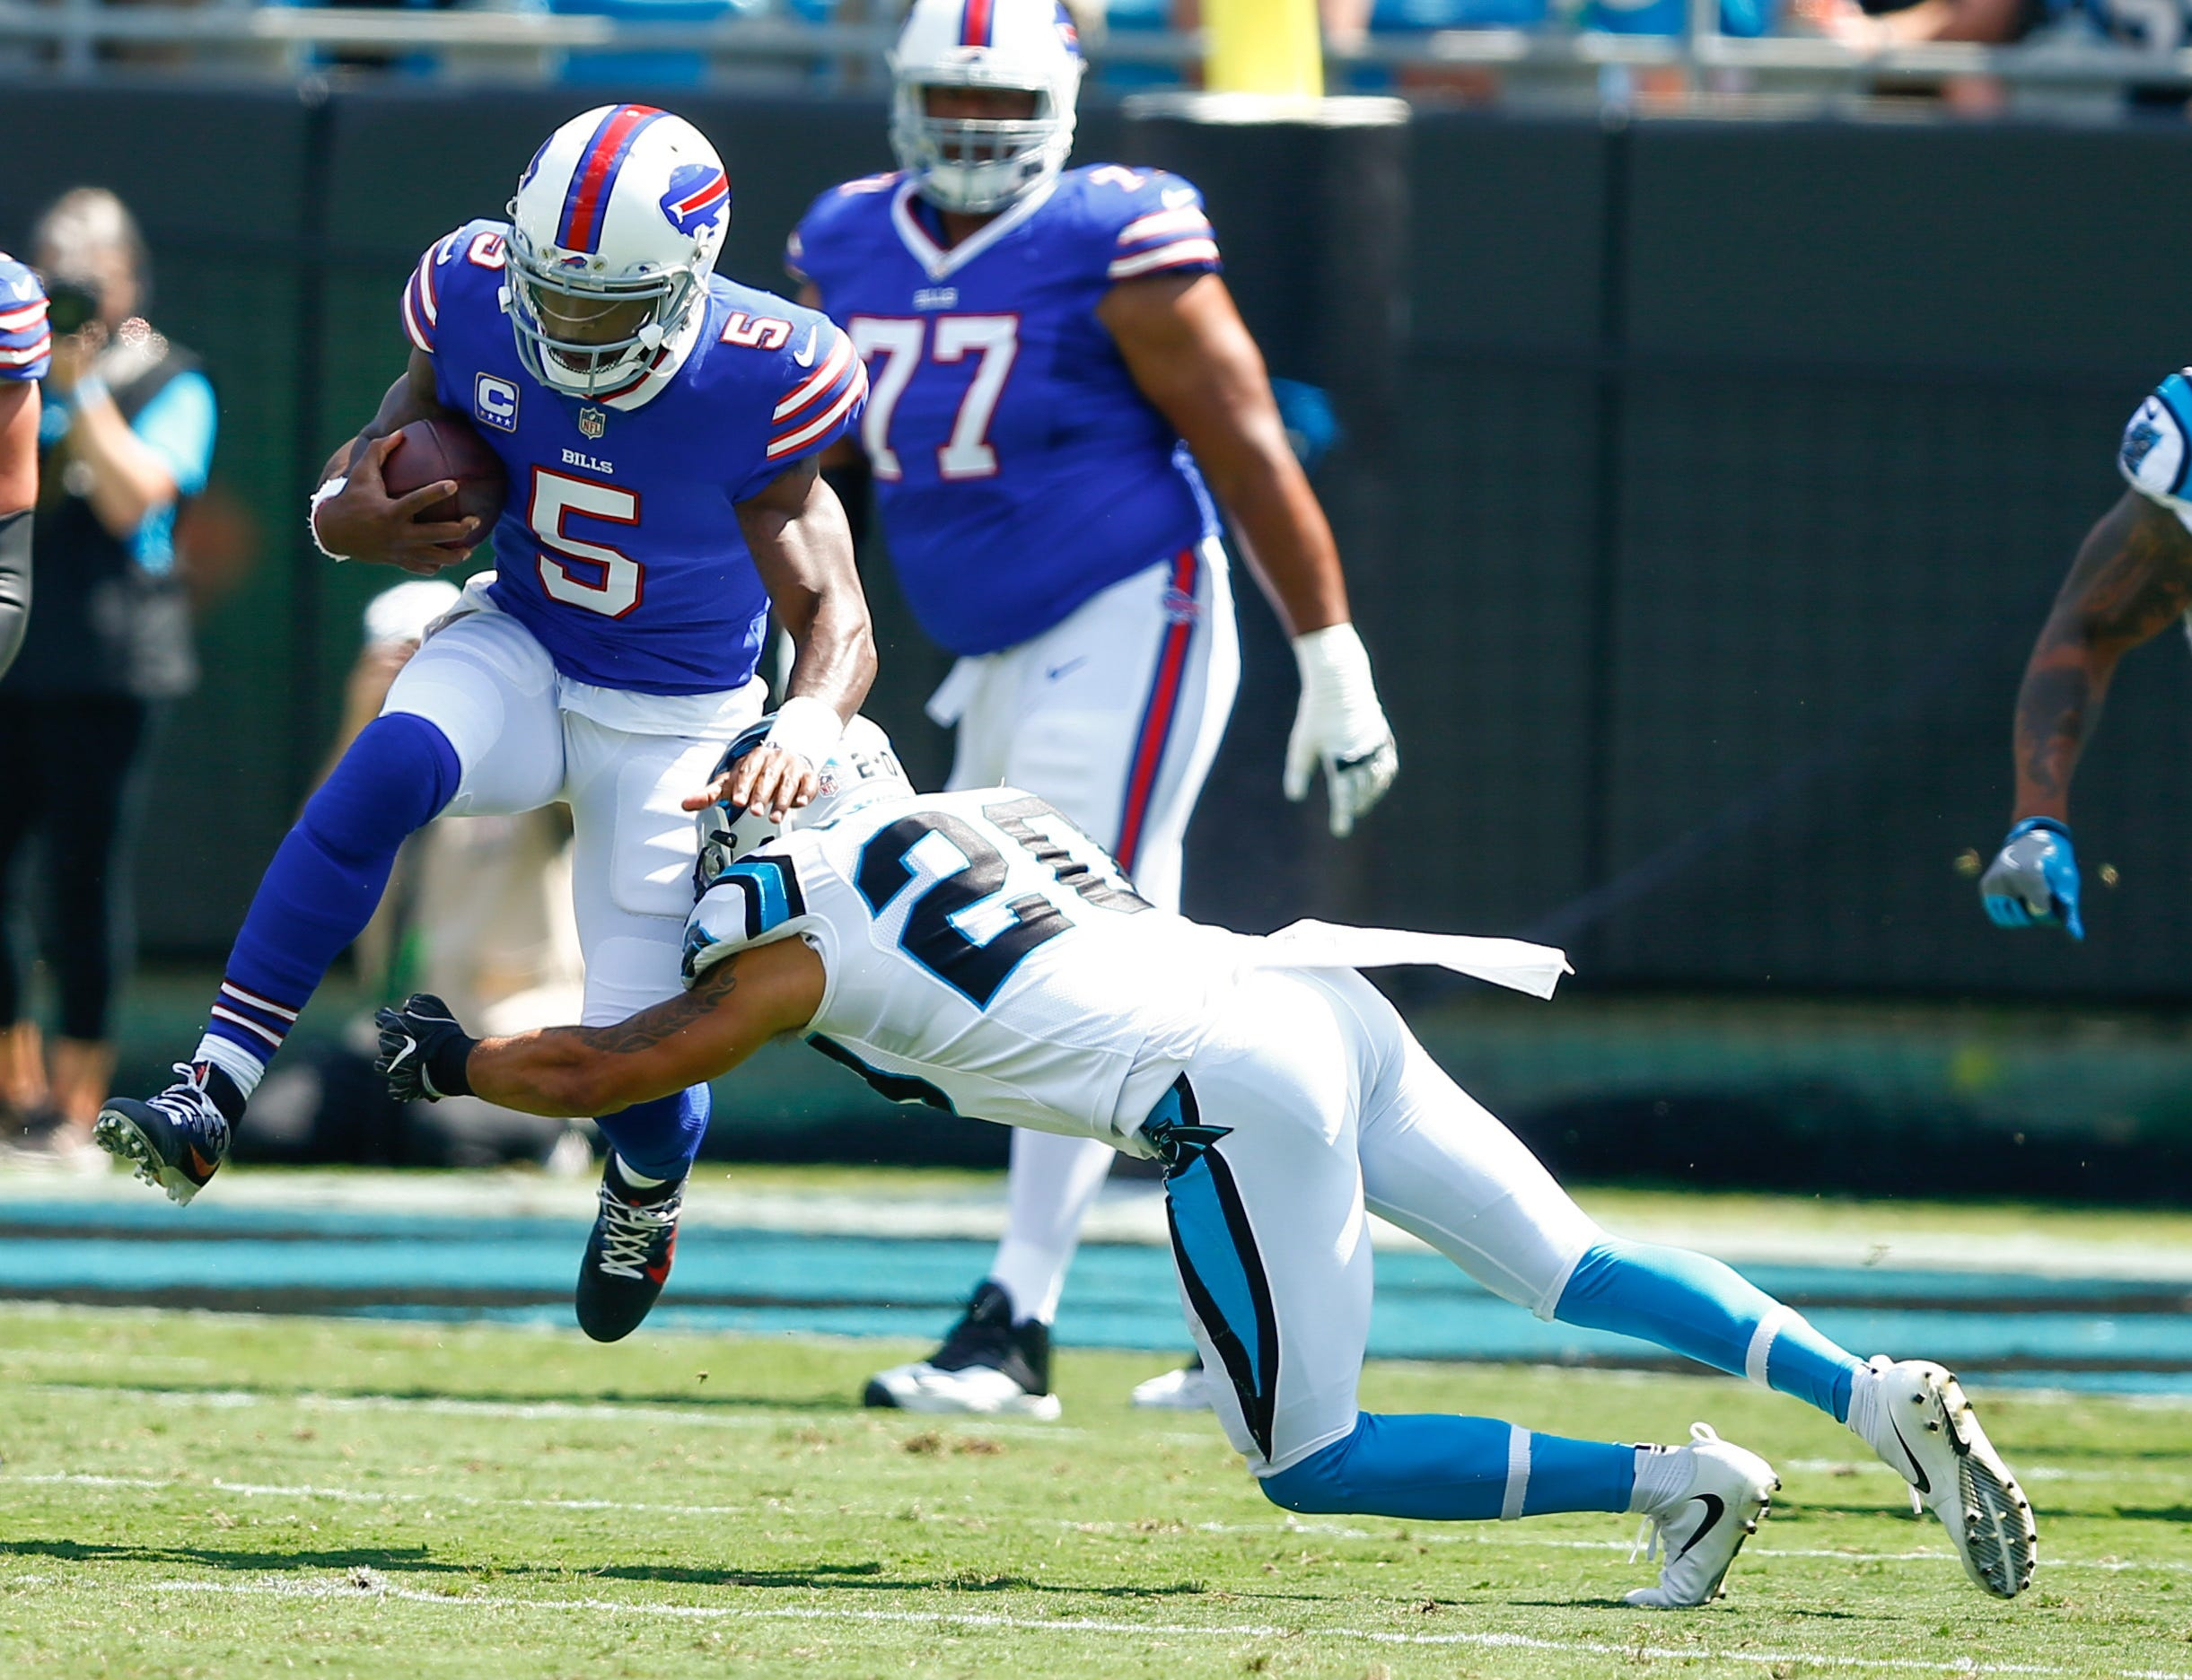 Buffalo Bills' offense horrendous in 9-3 loss to the Carolina Panthers